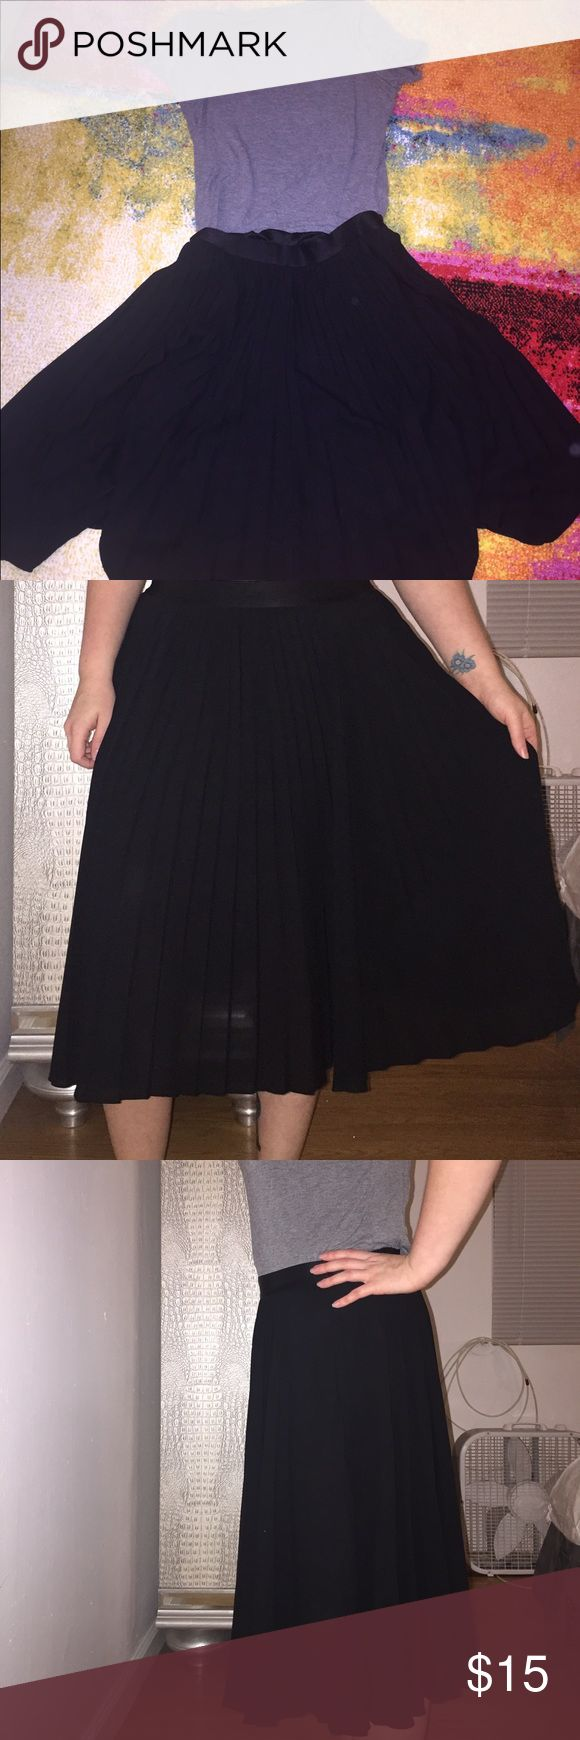 Express L Black Pleated Skirt Gently used black Express skirt, size large. Skirt is pleated with elastic waist. Perfect for work or a night out! Skirt hits at mid calf. No stains or tears. Comes from a pet and smoke free home. Express Skirts A-Line or Full